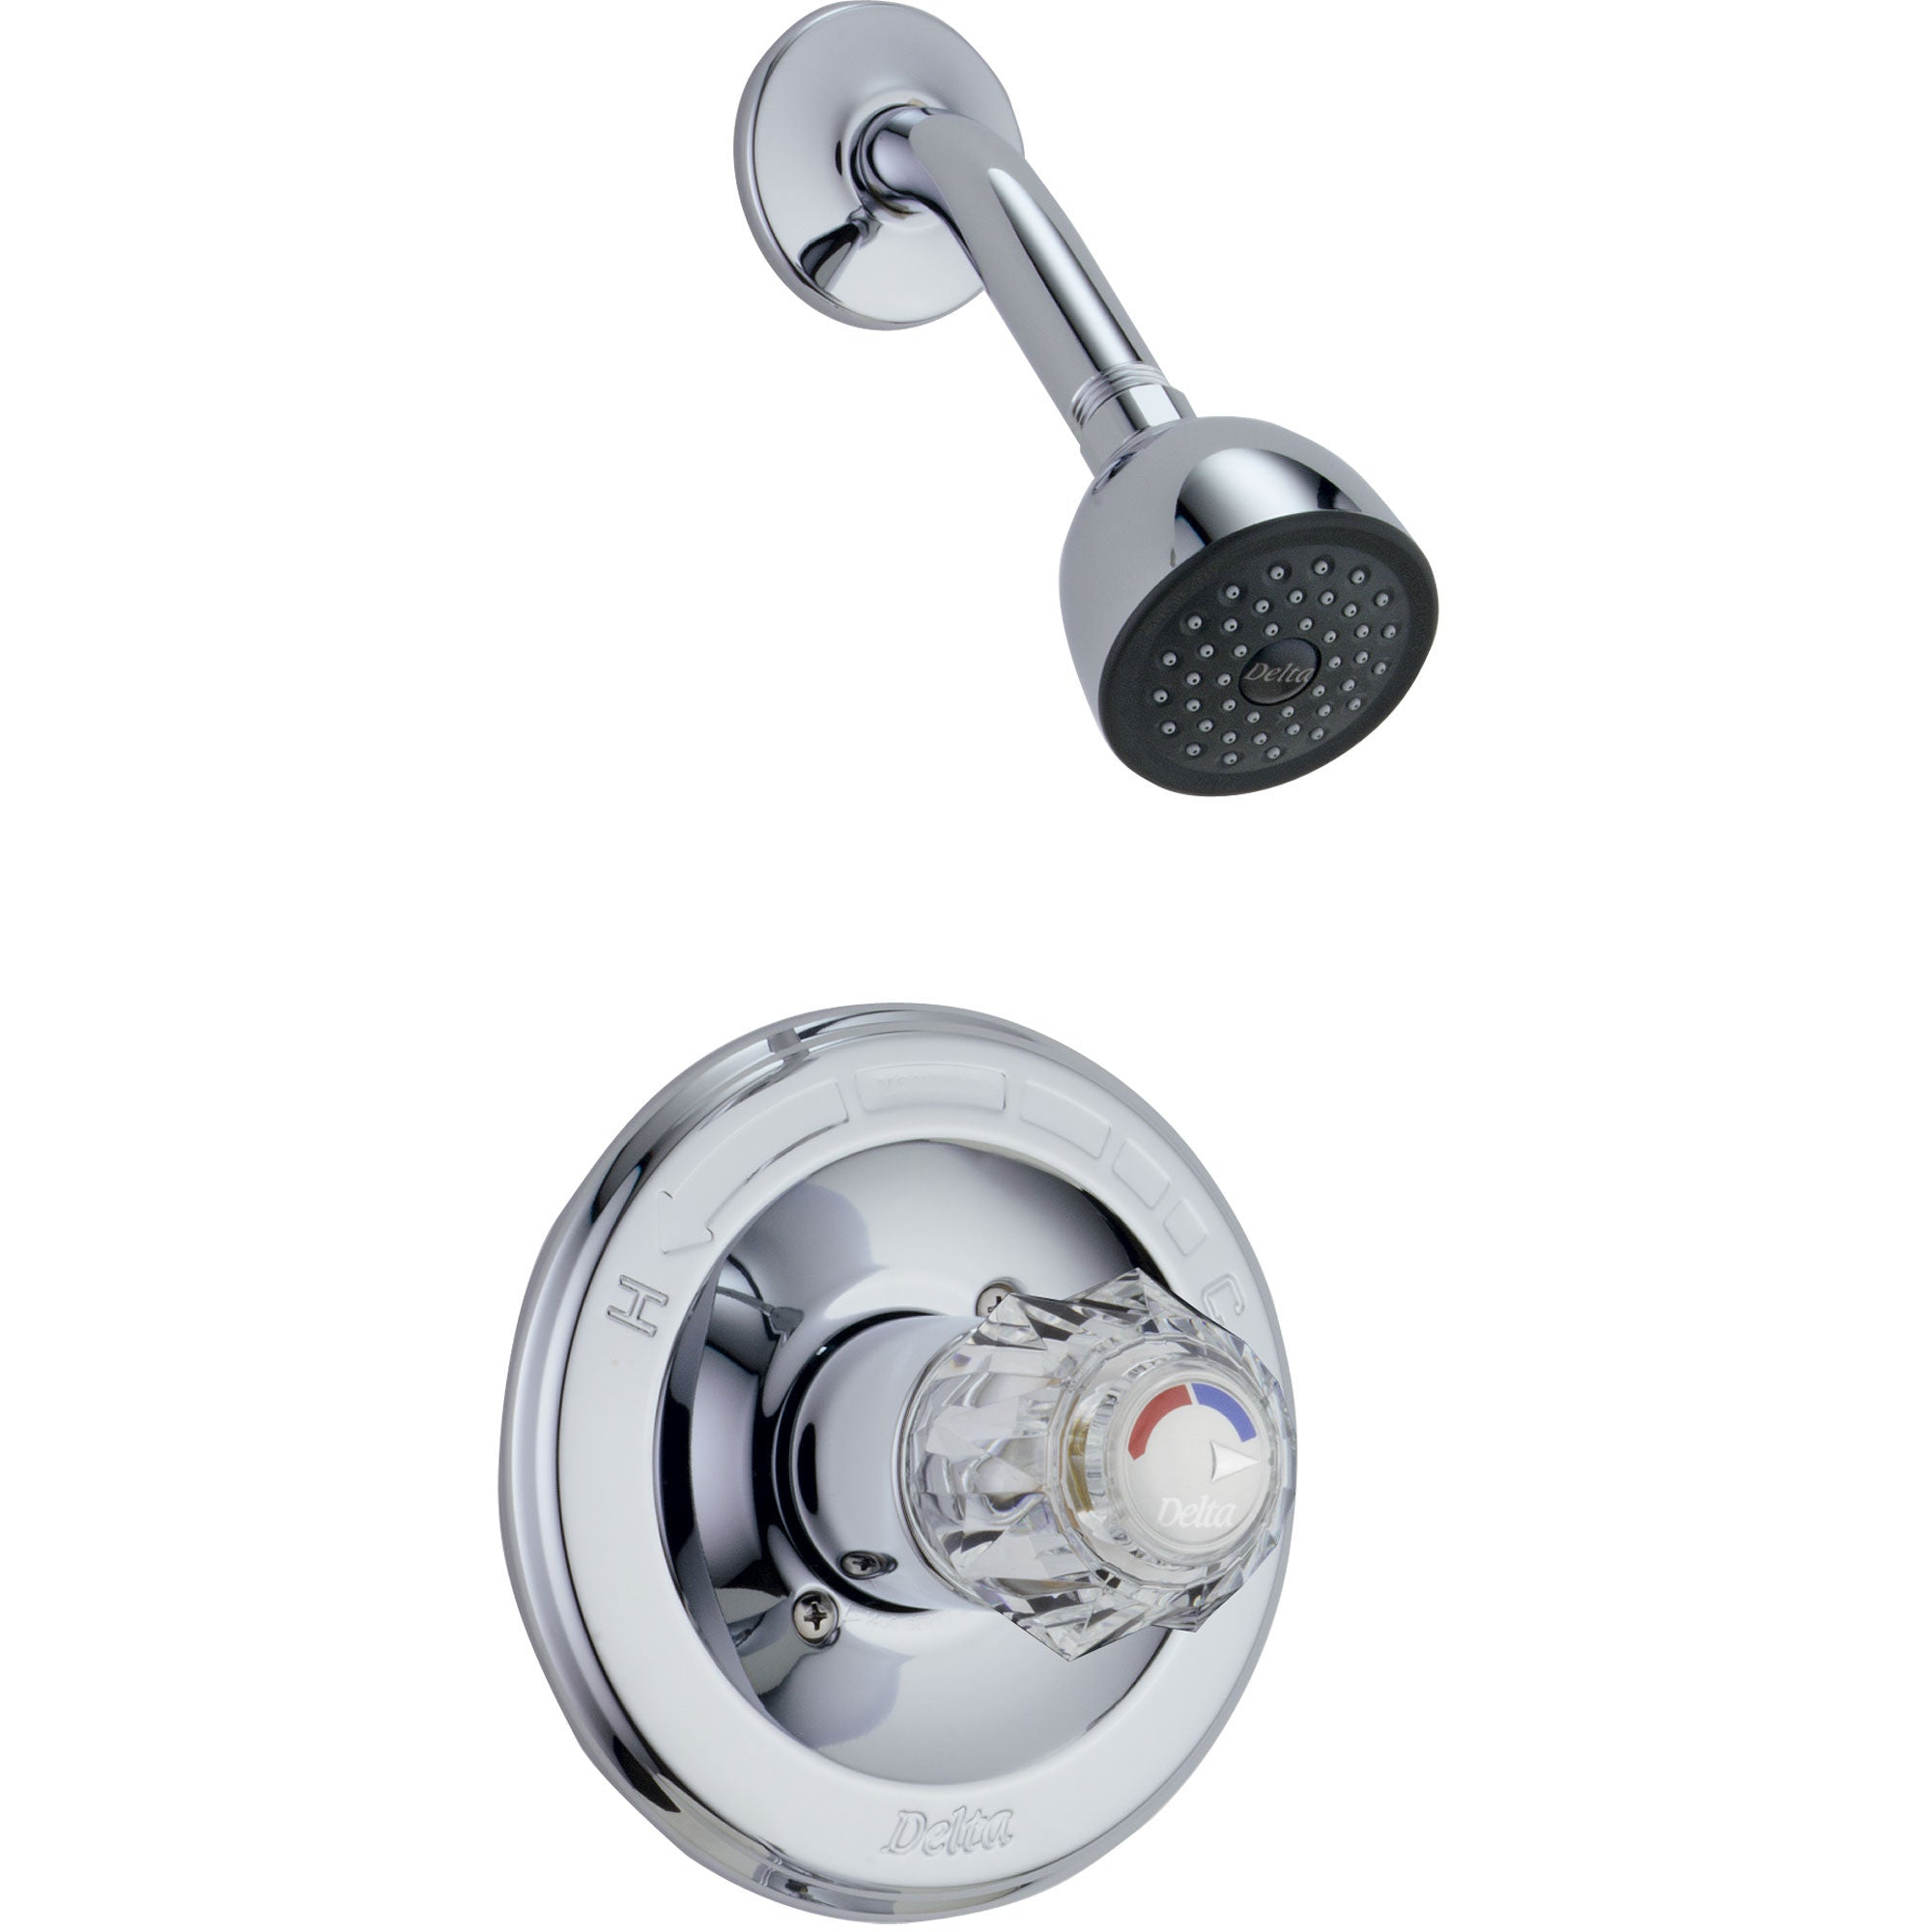 Delta Classic Chrome Single Knob Pressure Balanced Shower Control Trim 778489